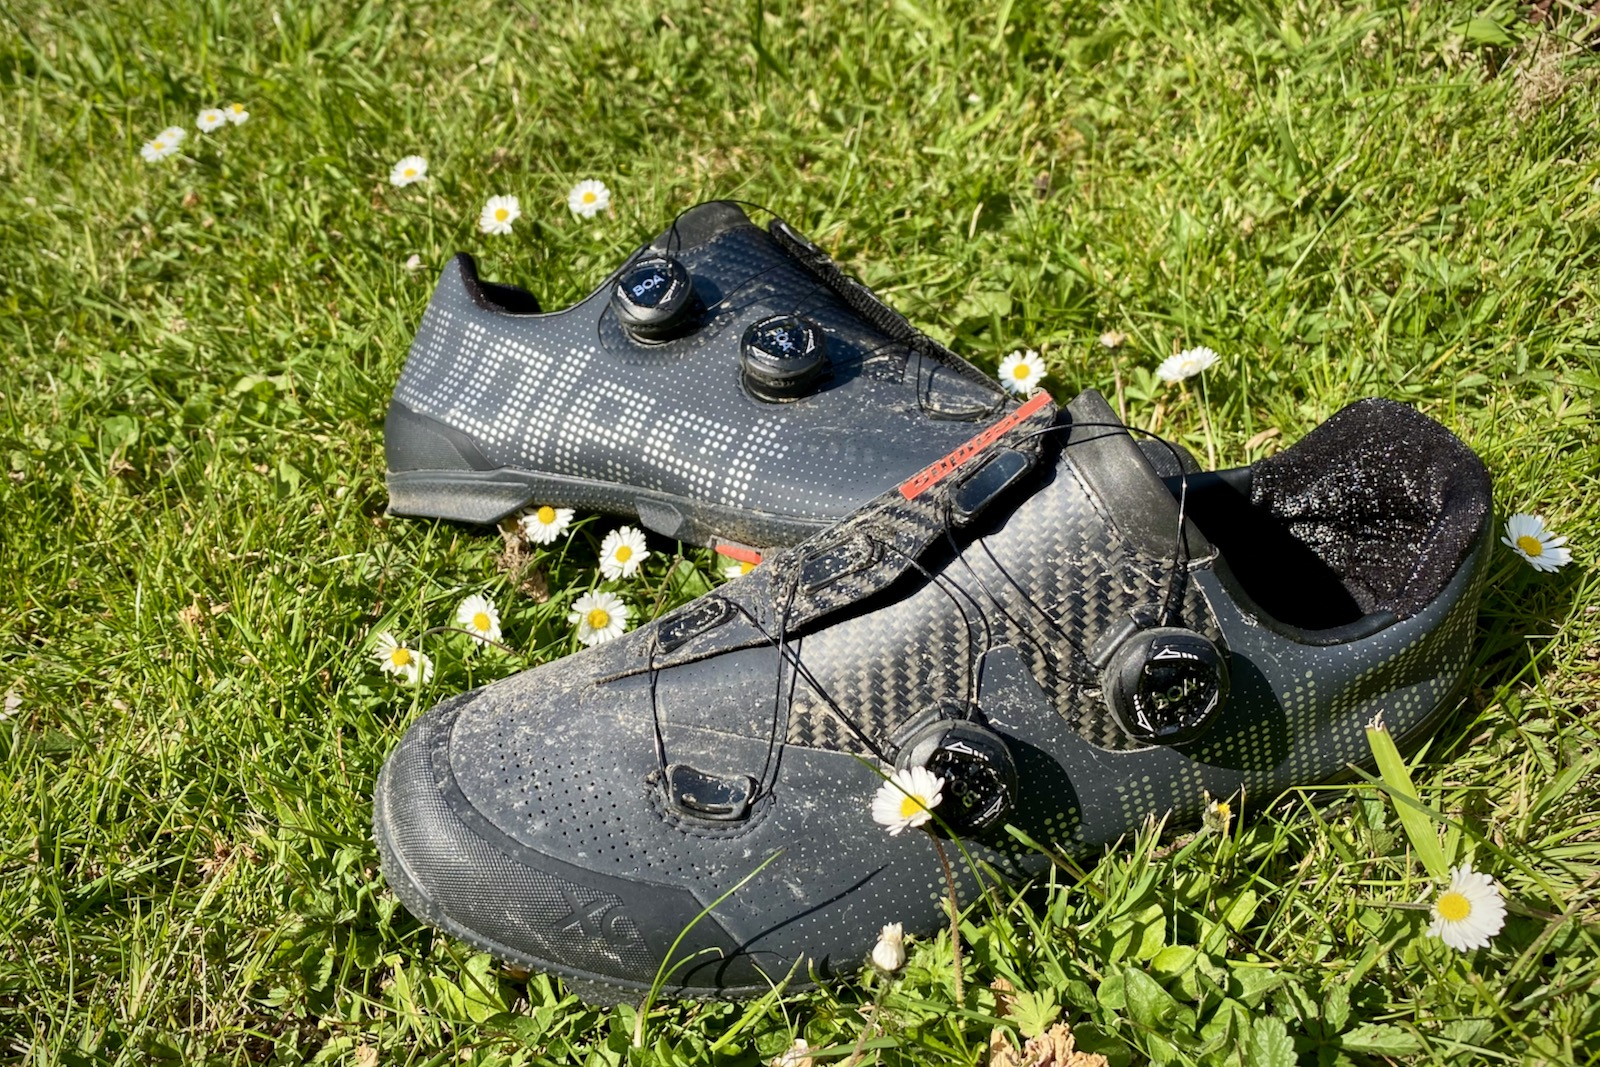 Suplest Cross Country Pro Mountain Bike Shoes Tim Wiggins